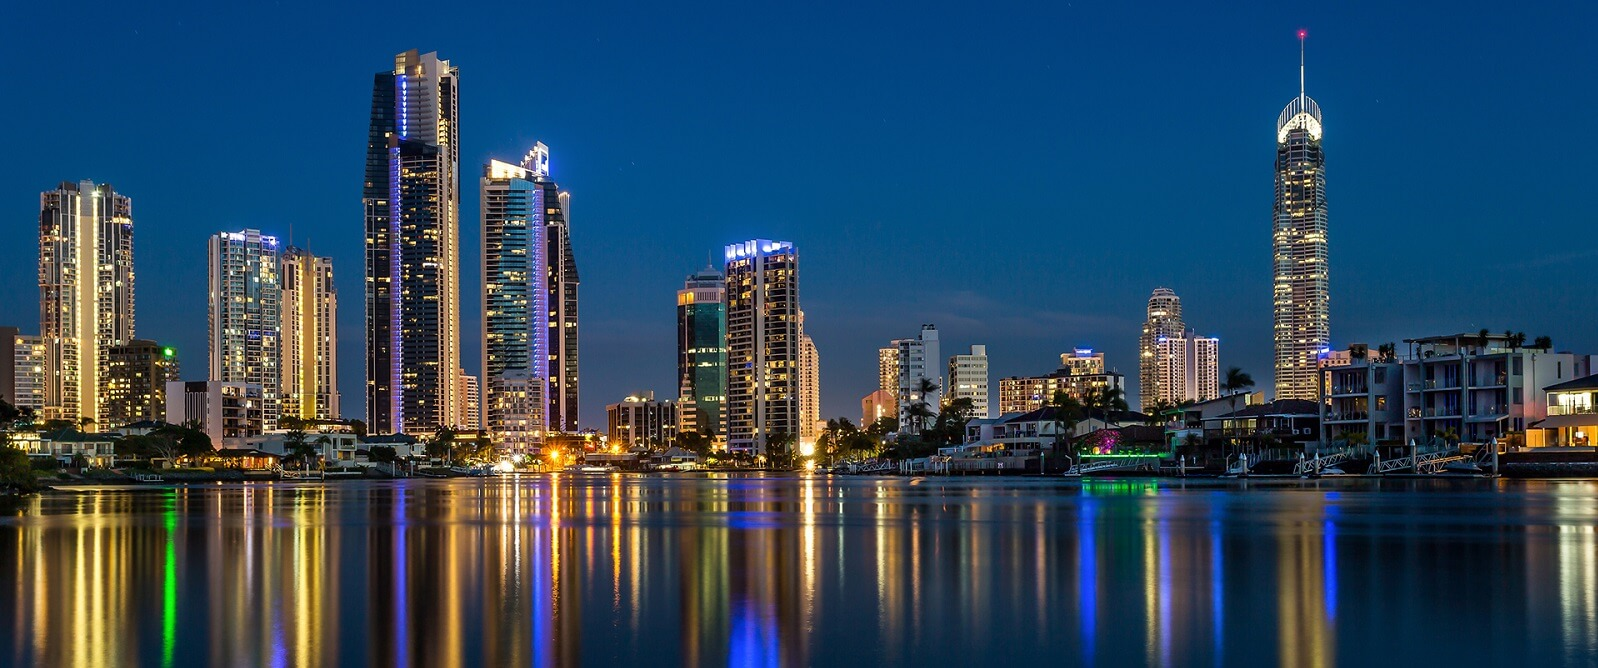 What is there to do in Gold Coast at night?